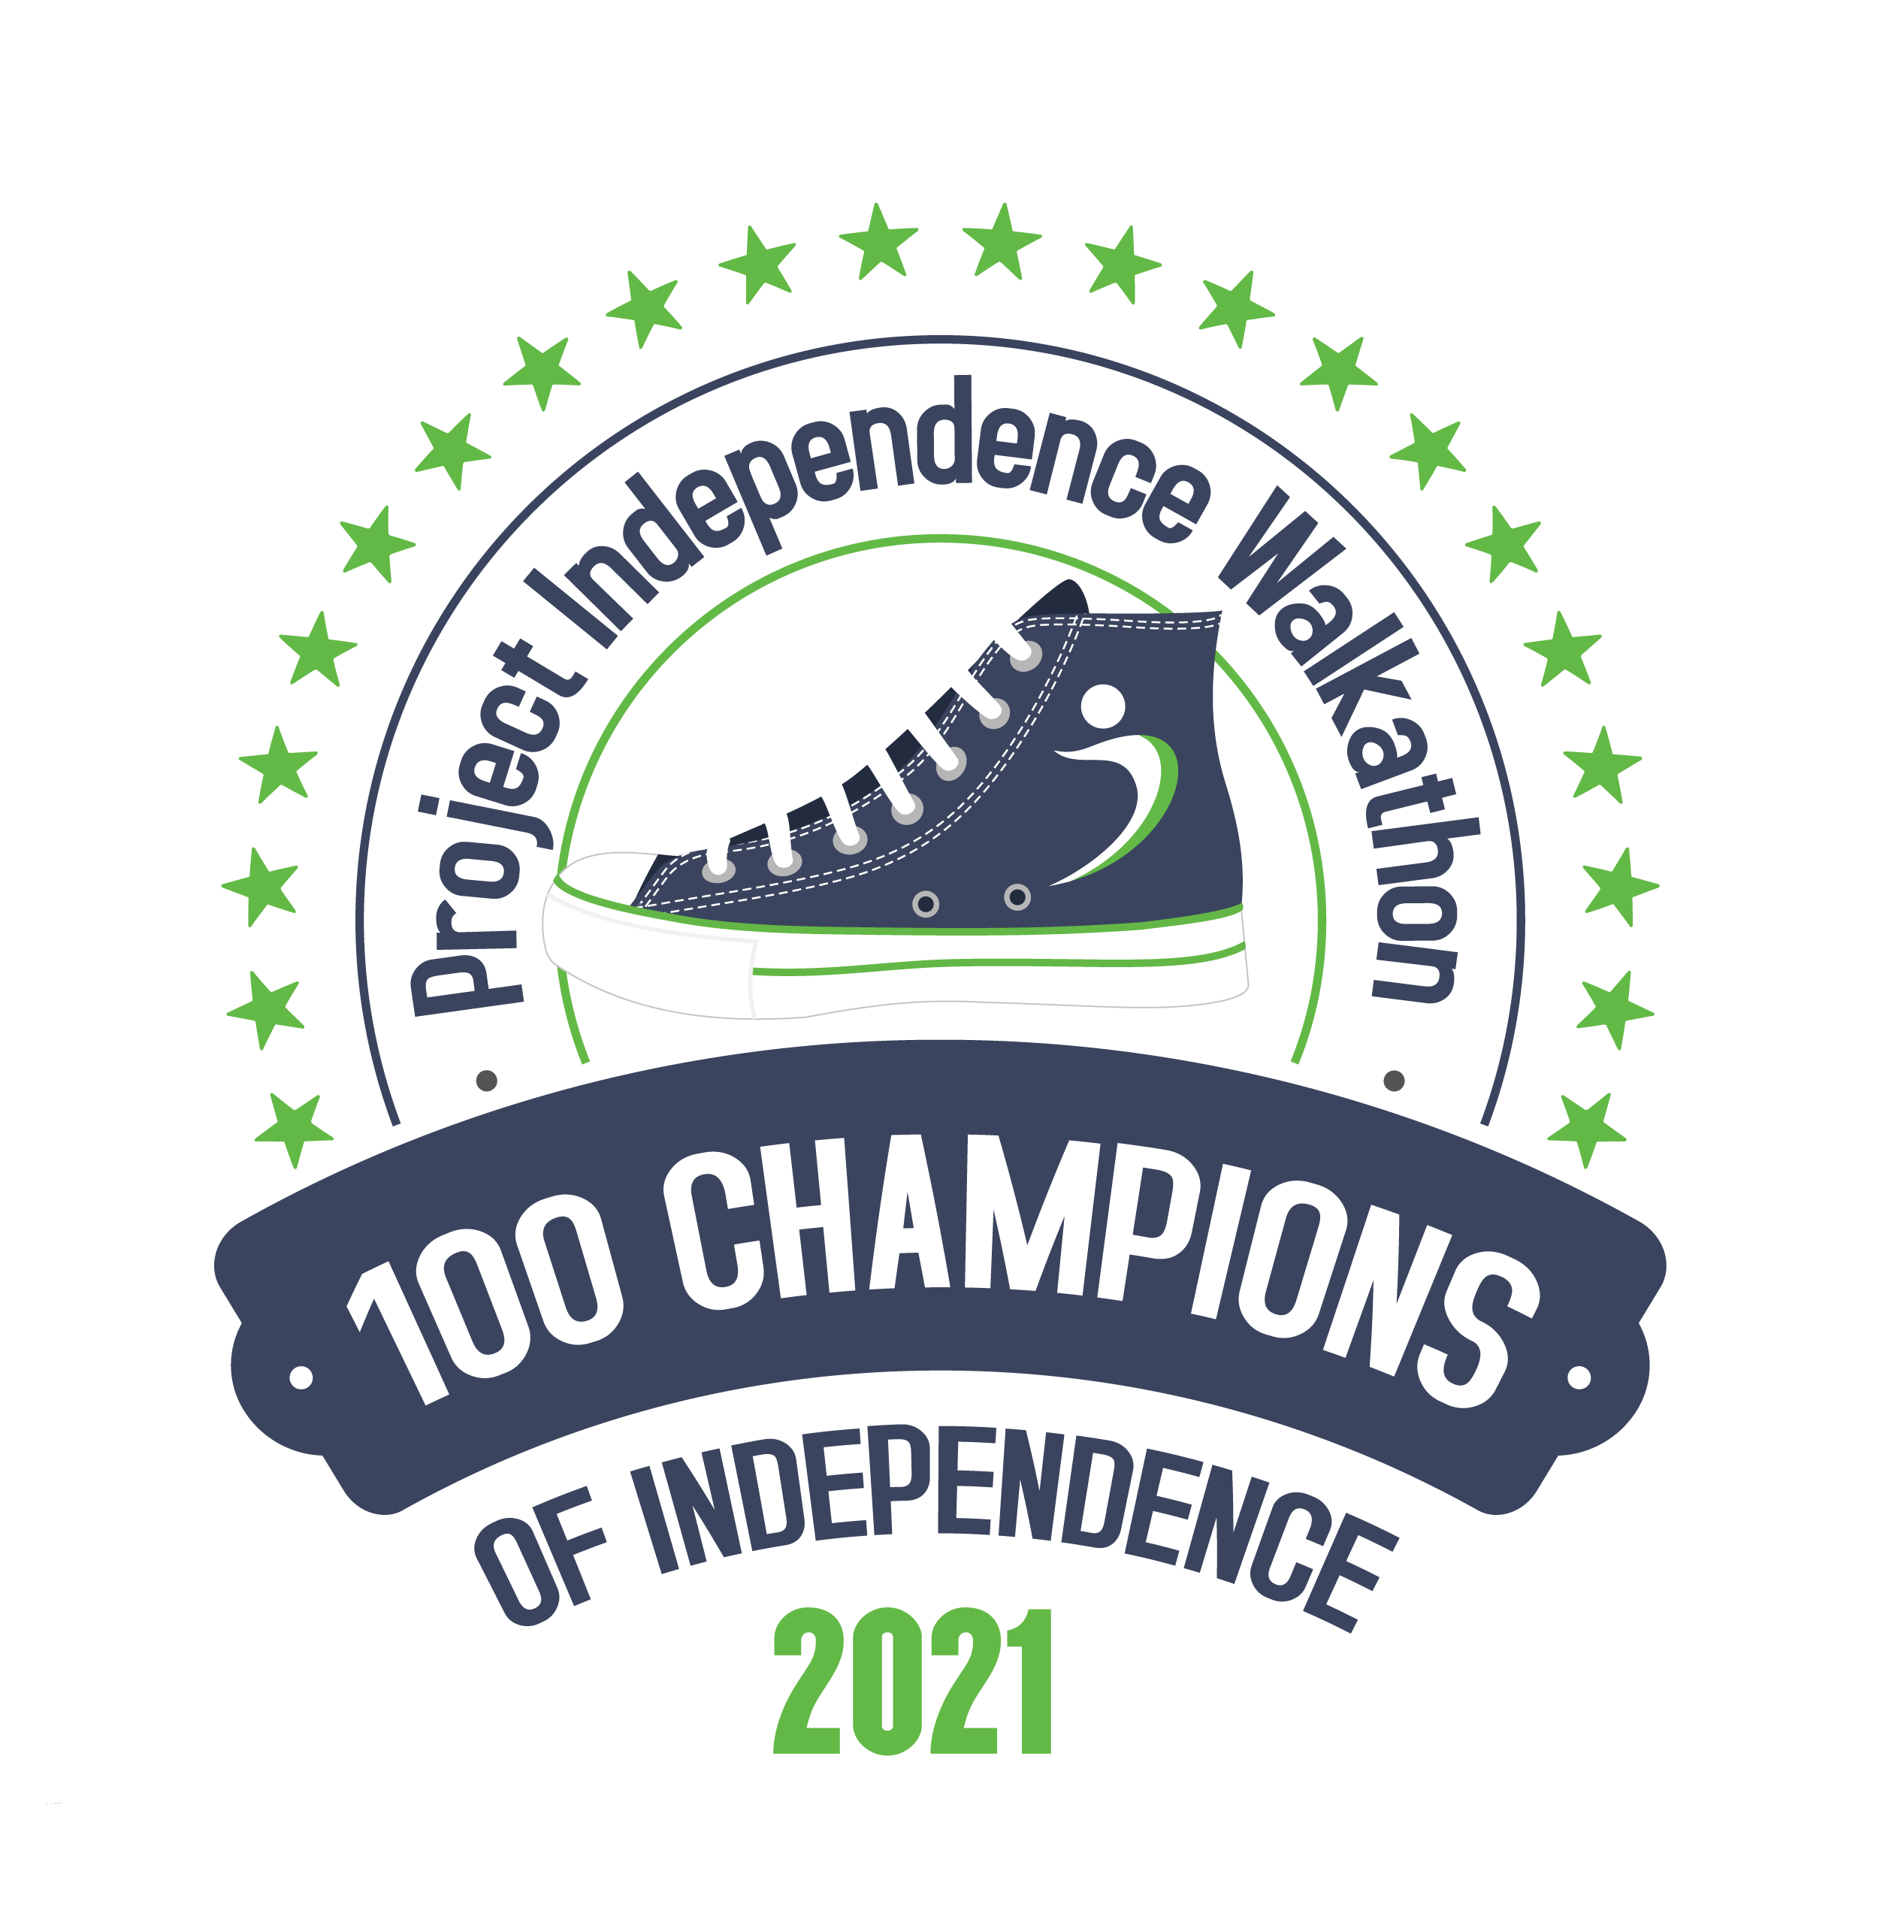 Project Independence Walkathon - 100 Champions of Independence 2021